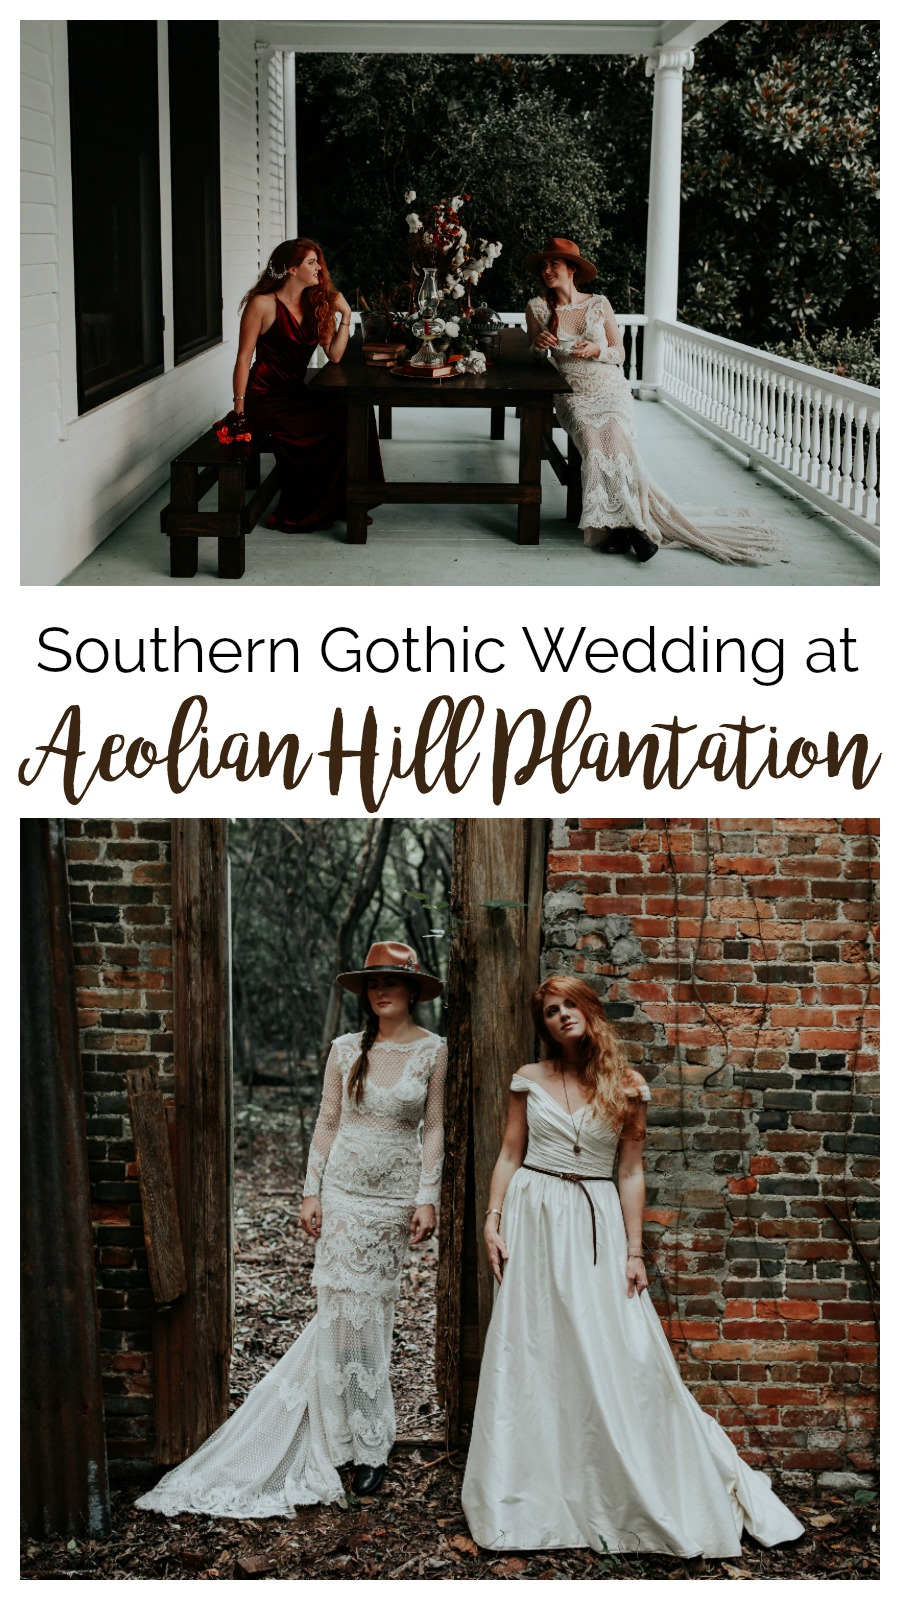 Southern Gothic Wedding Styled Shoot at Aeolian Hill Plantation | Palmetto State Weddings | Carrie Elizabeth Photography | romantic Southern wedding | grunge wedding | edgy wedding inspiration